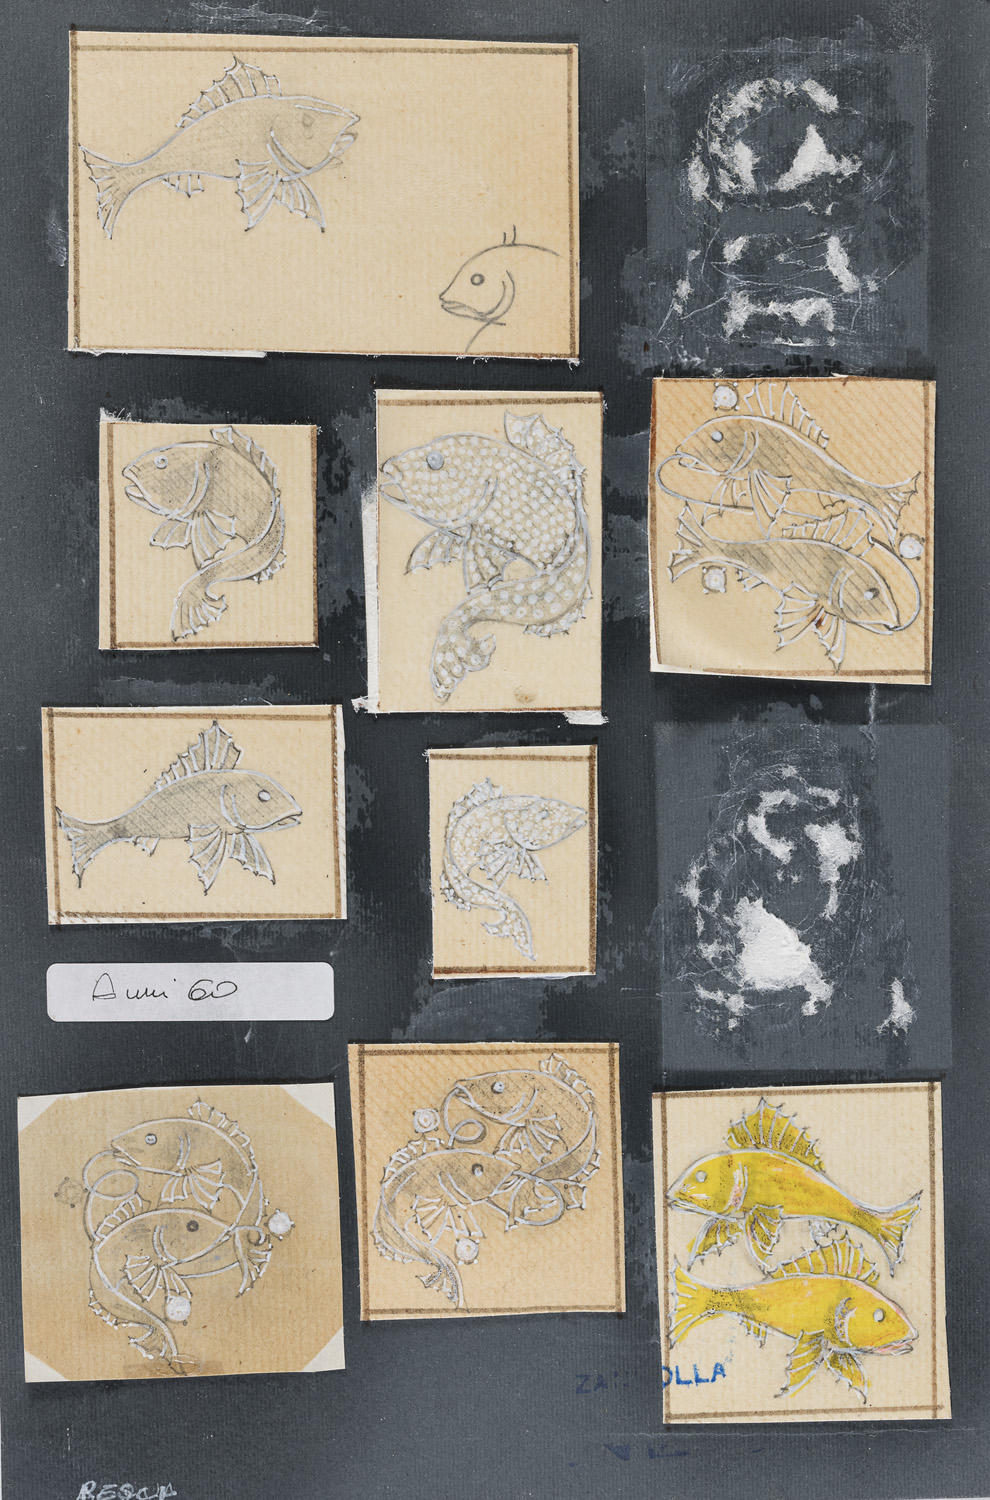 NINE MIXED MEDIA AND A MOLD BY CESARE ZANCOLLA 1960's